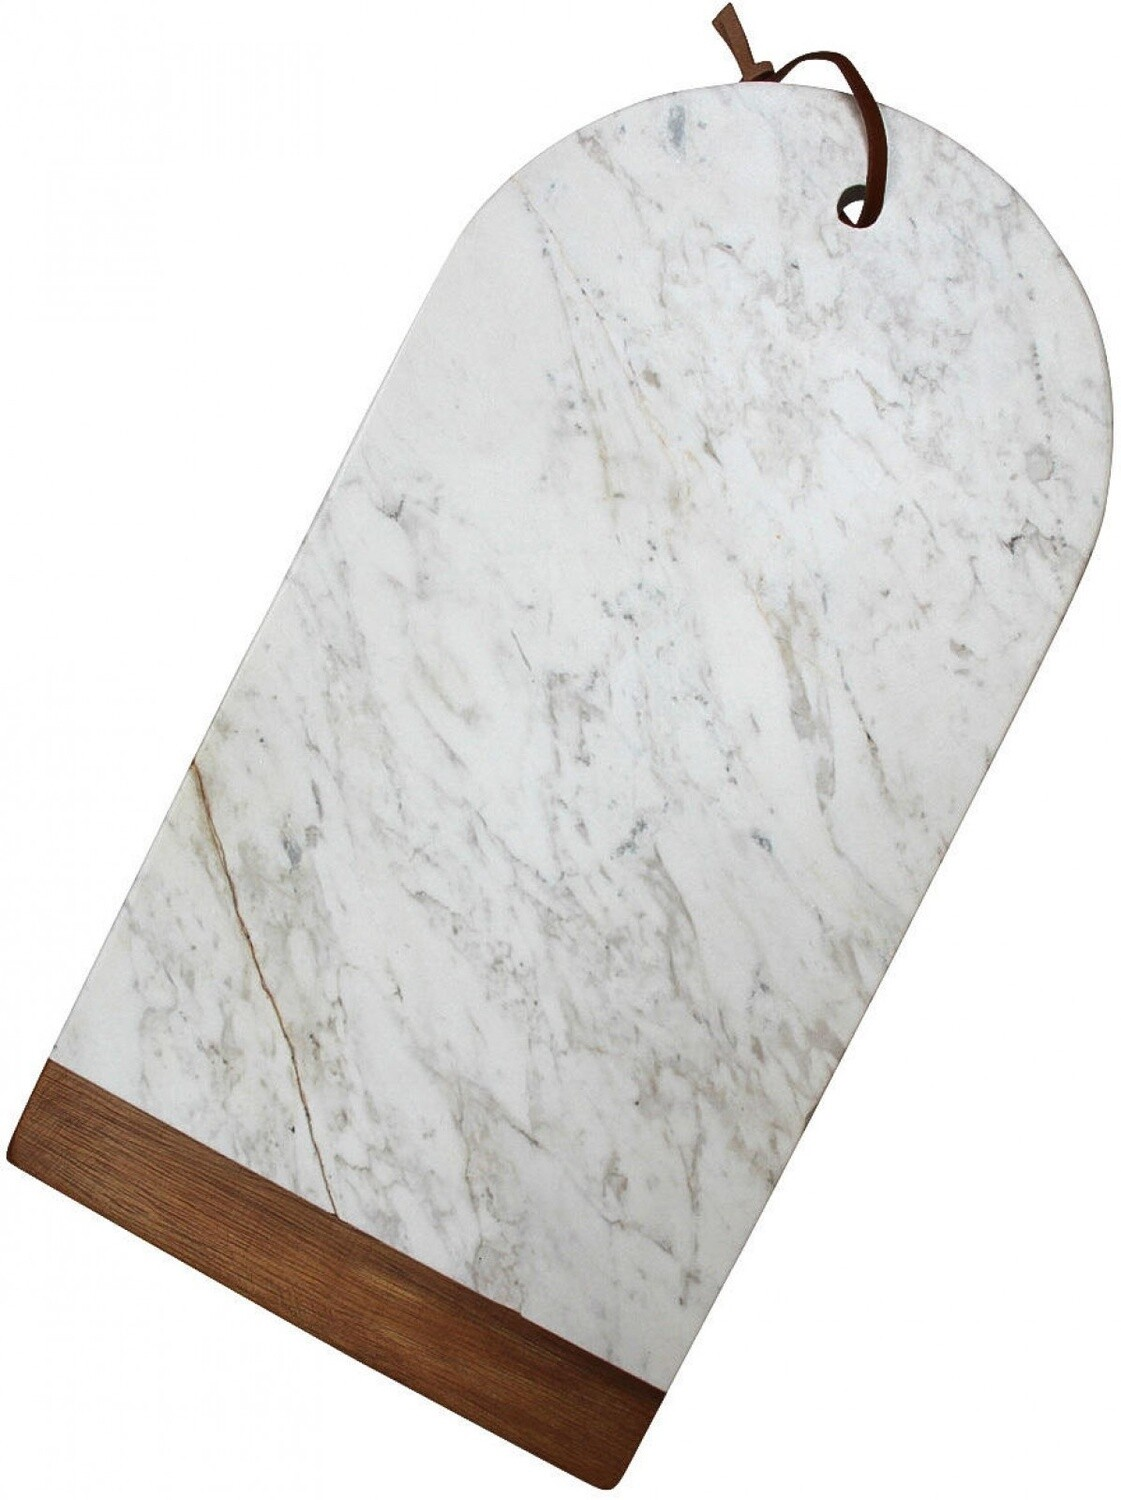 Serving Board Marble Dome